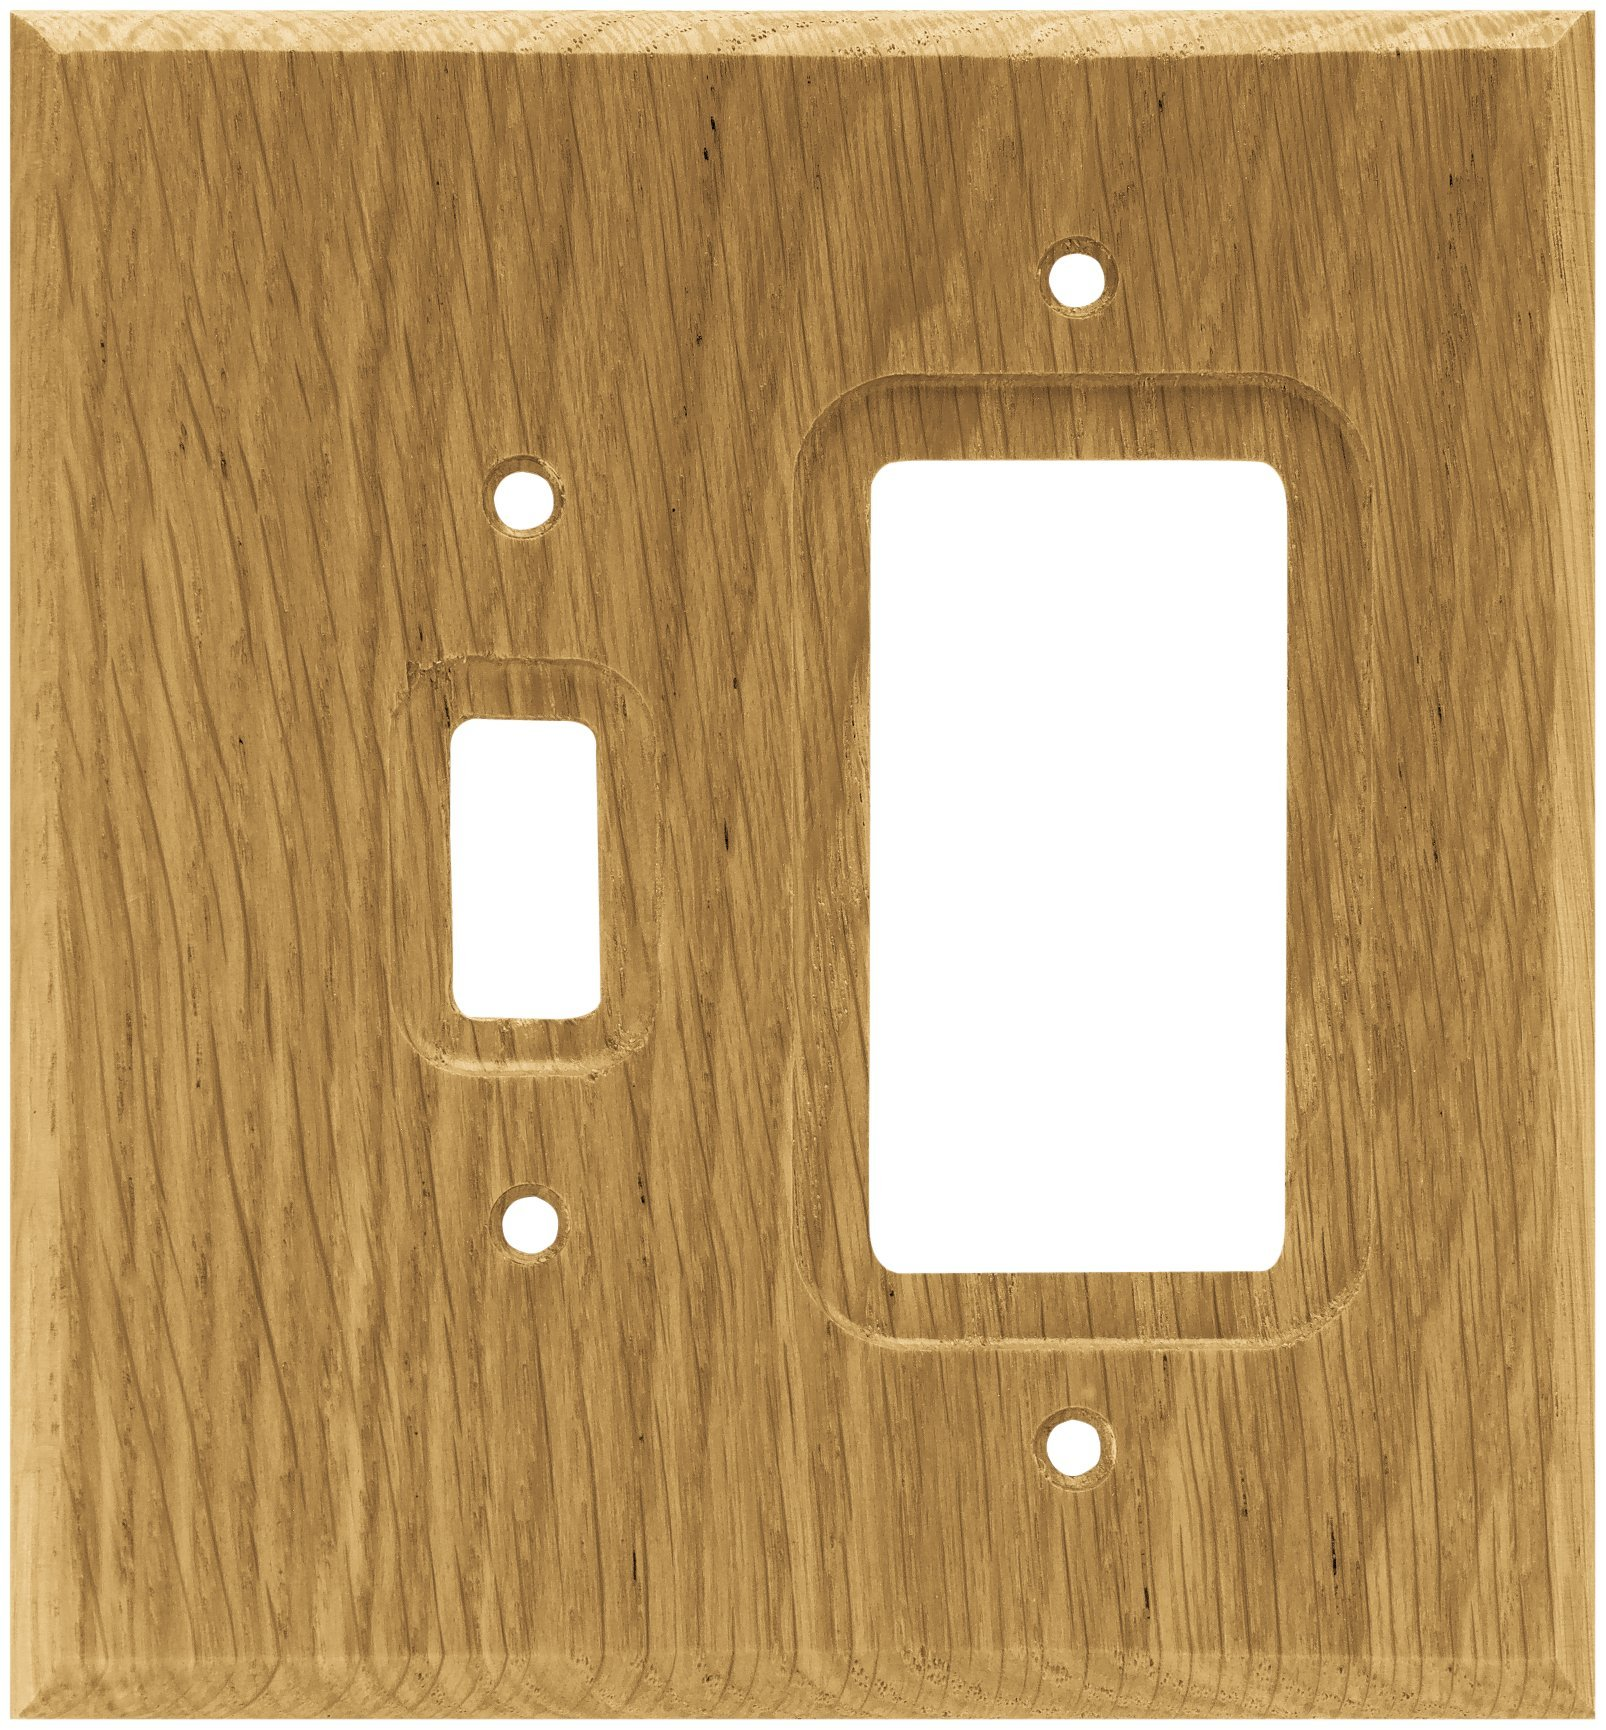 Brainerd 64679 Wood Square Single Toggle Switch/Decorator Wall Plate / Switch Plate / Cover, Medium Oak